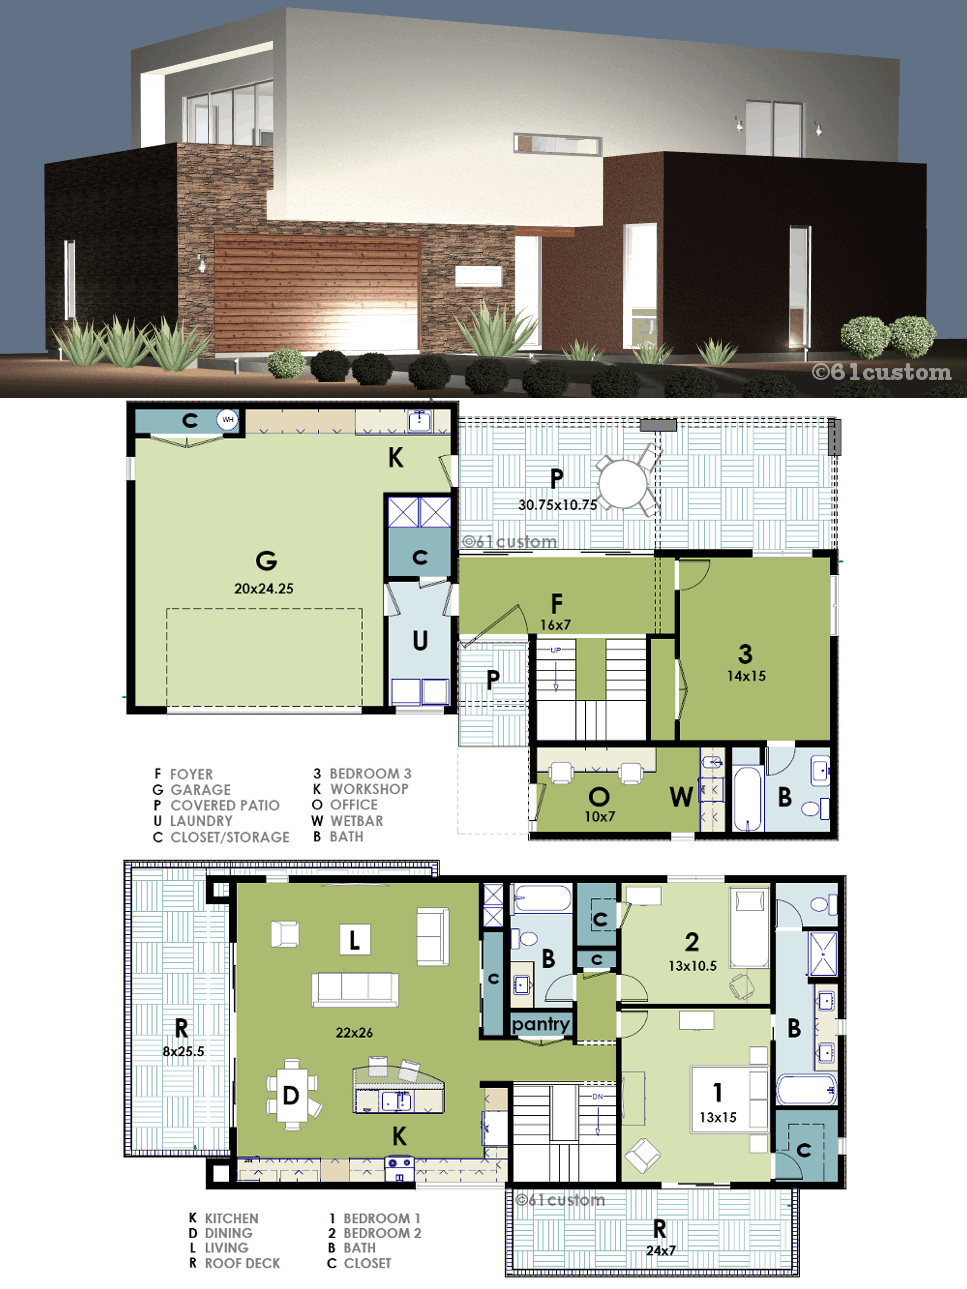 modern livework house plan  61custom  Floor Plans in